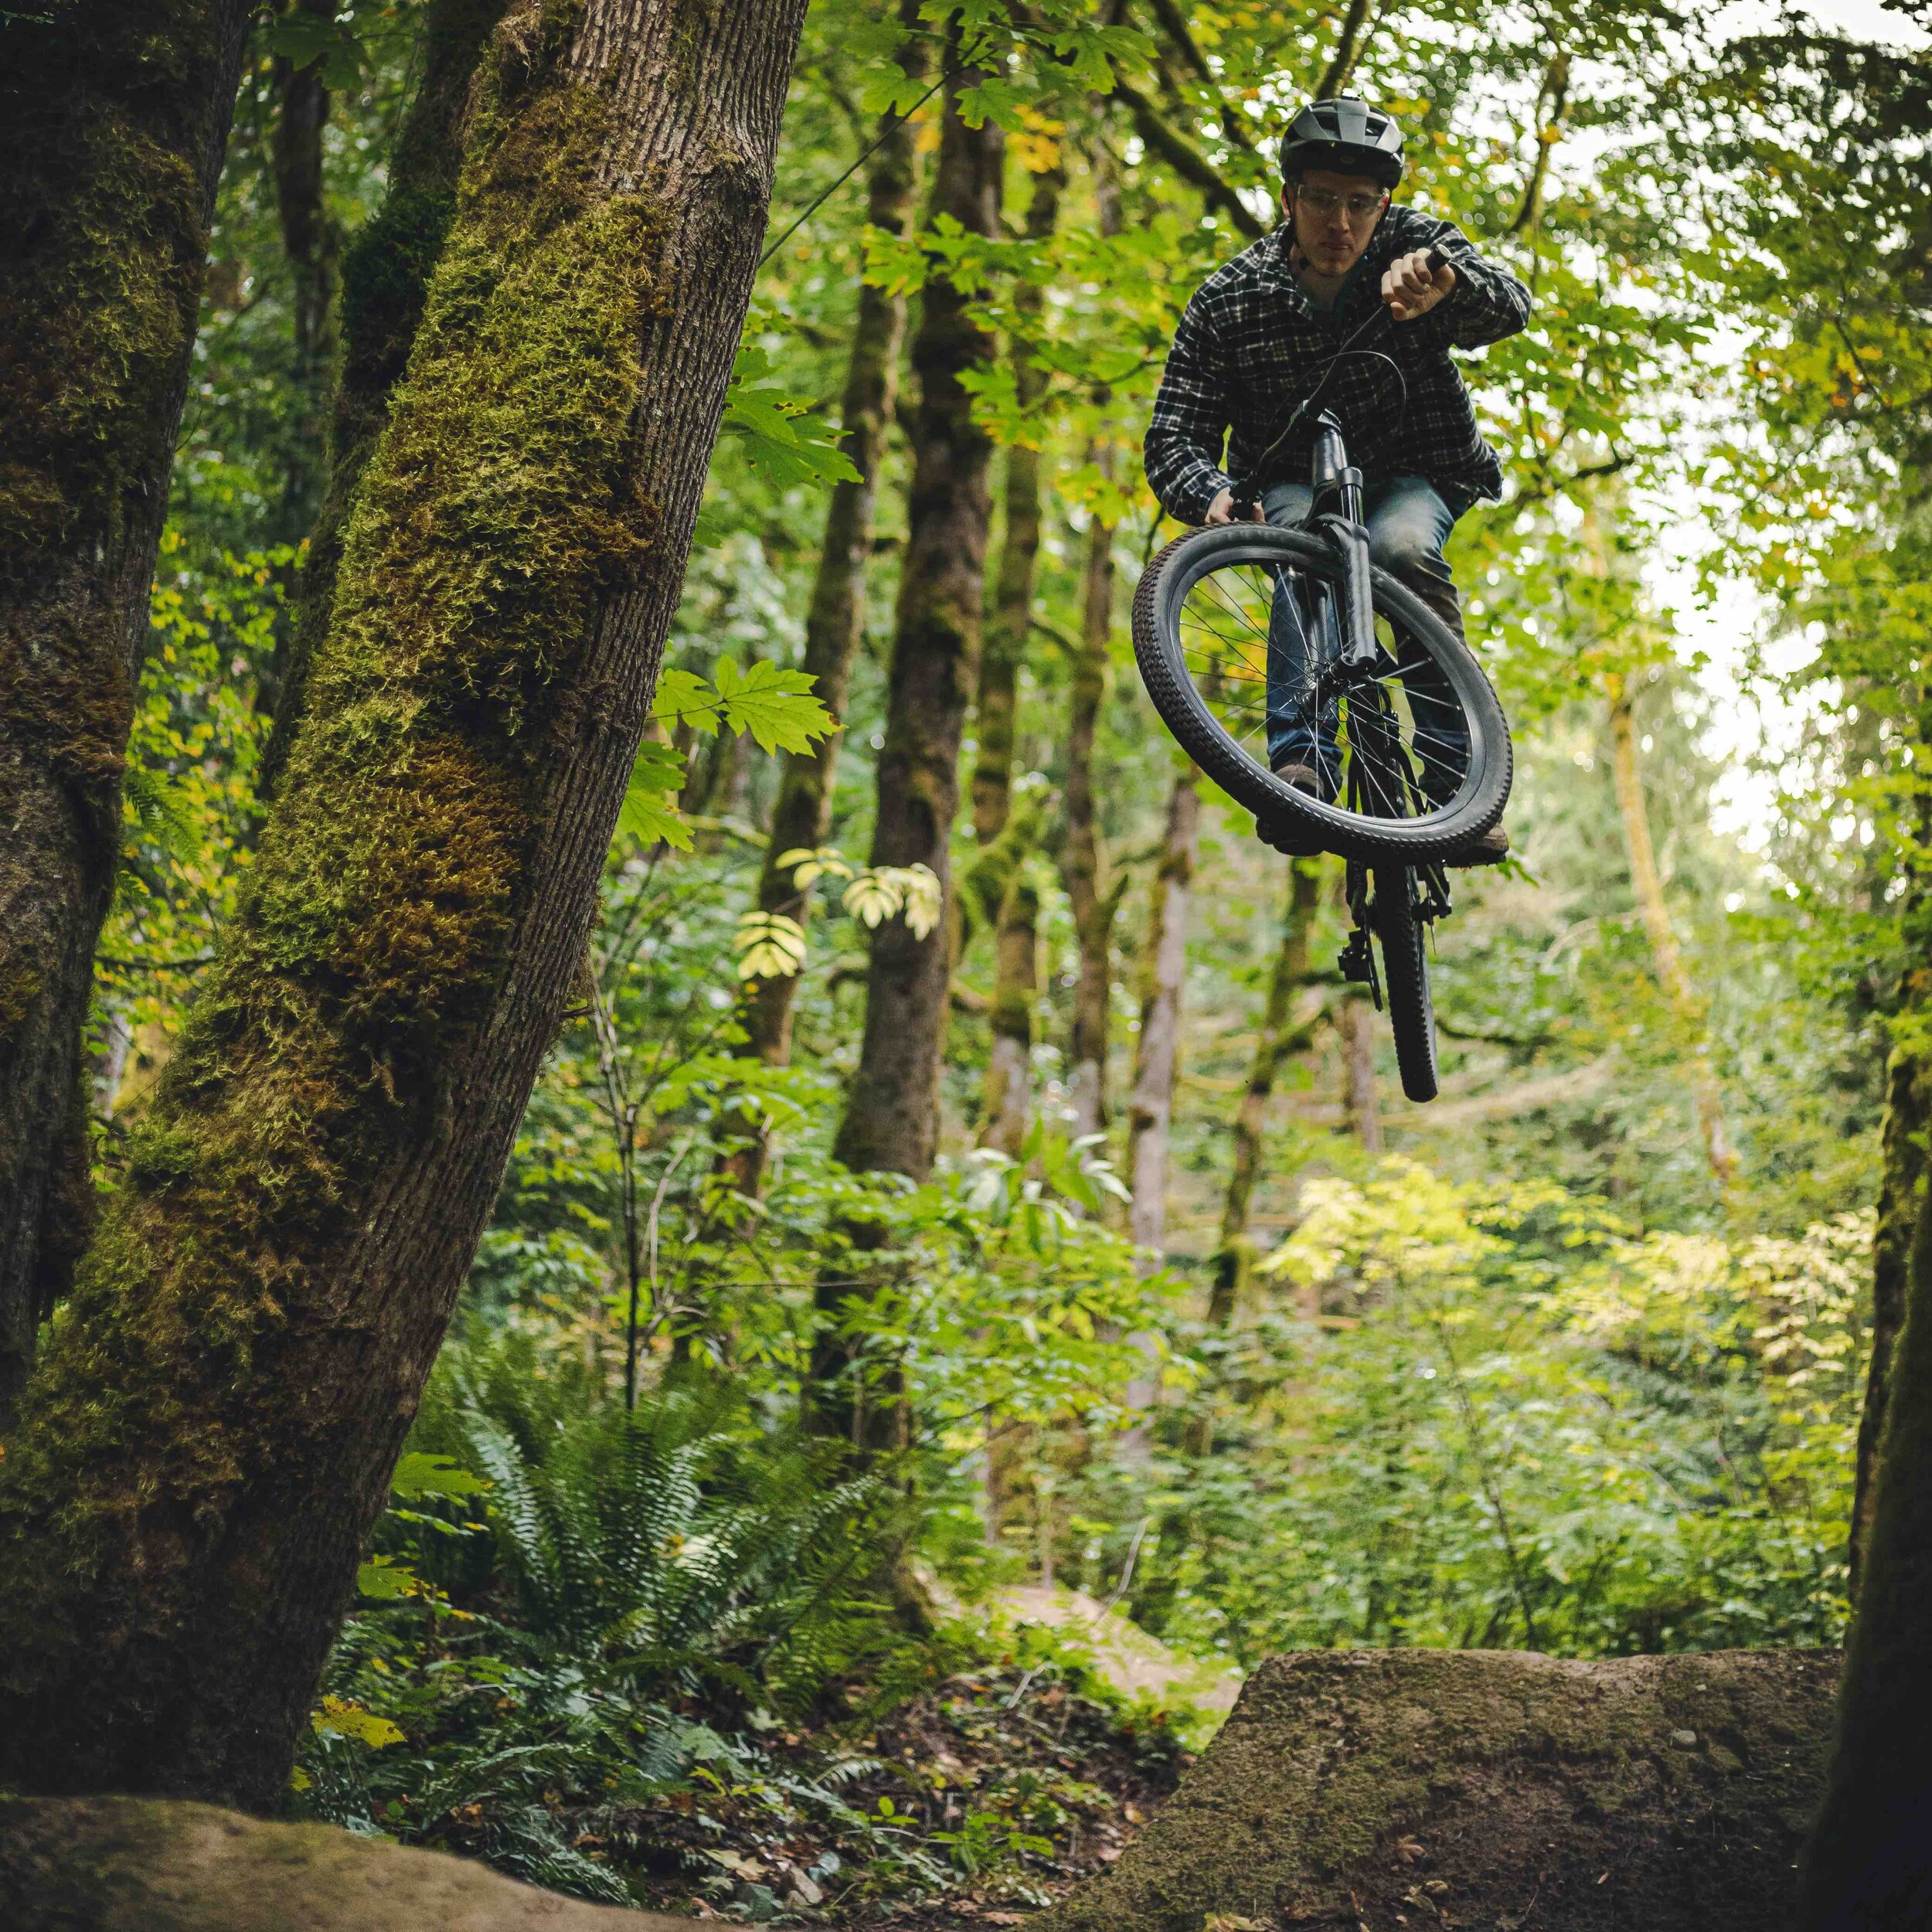 Man_Jumping_High_on_Dirt_Mountain_Bike_Jump_in_the_Woods.jpeg